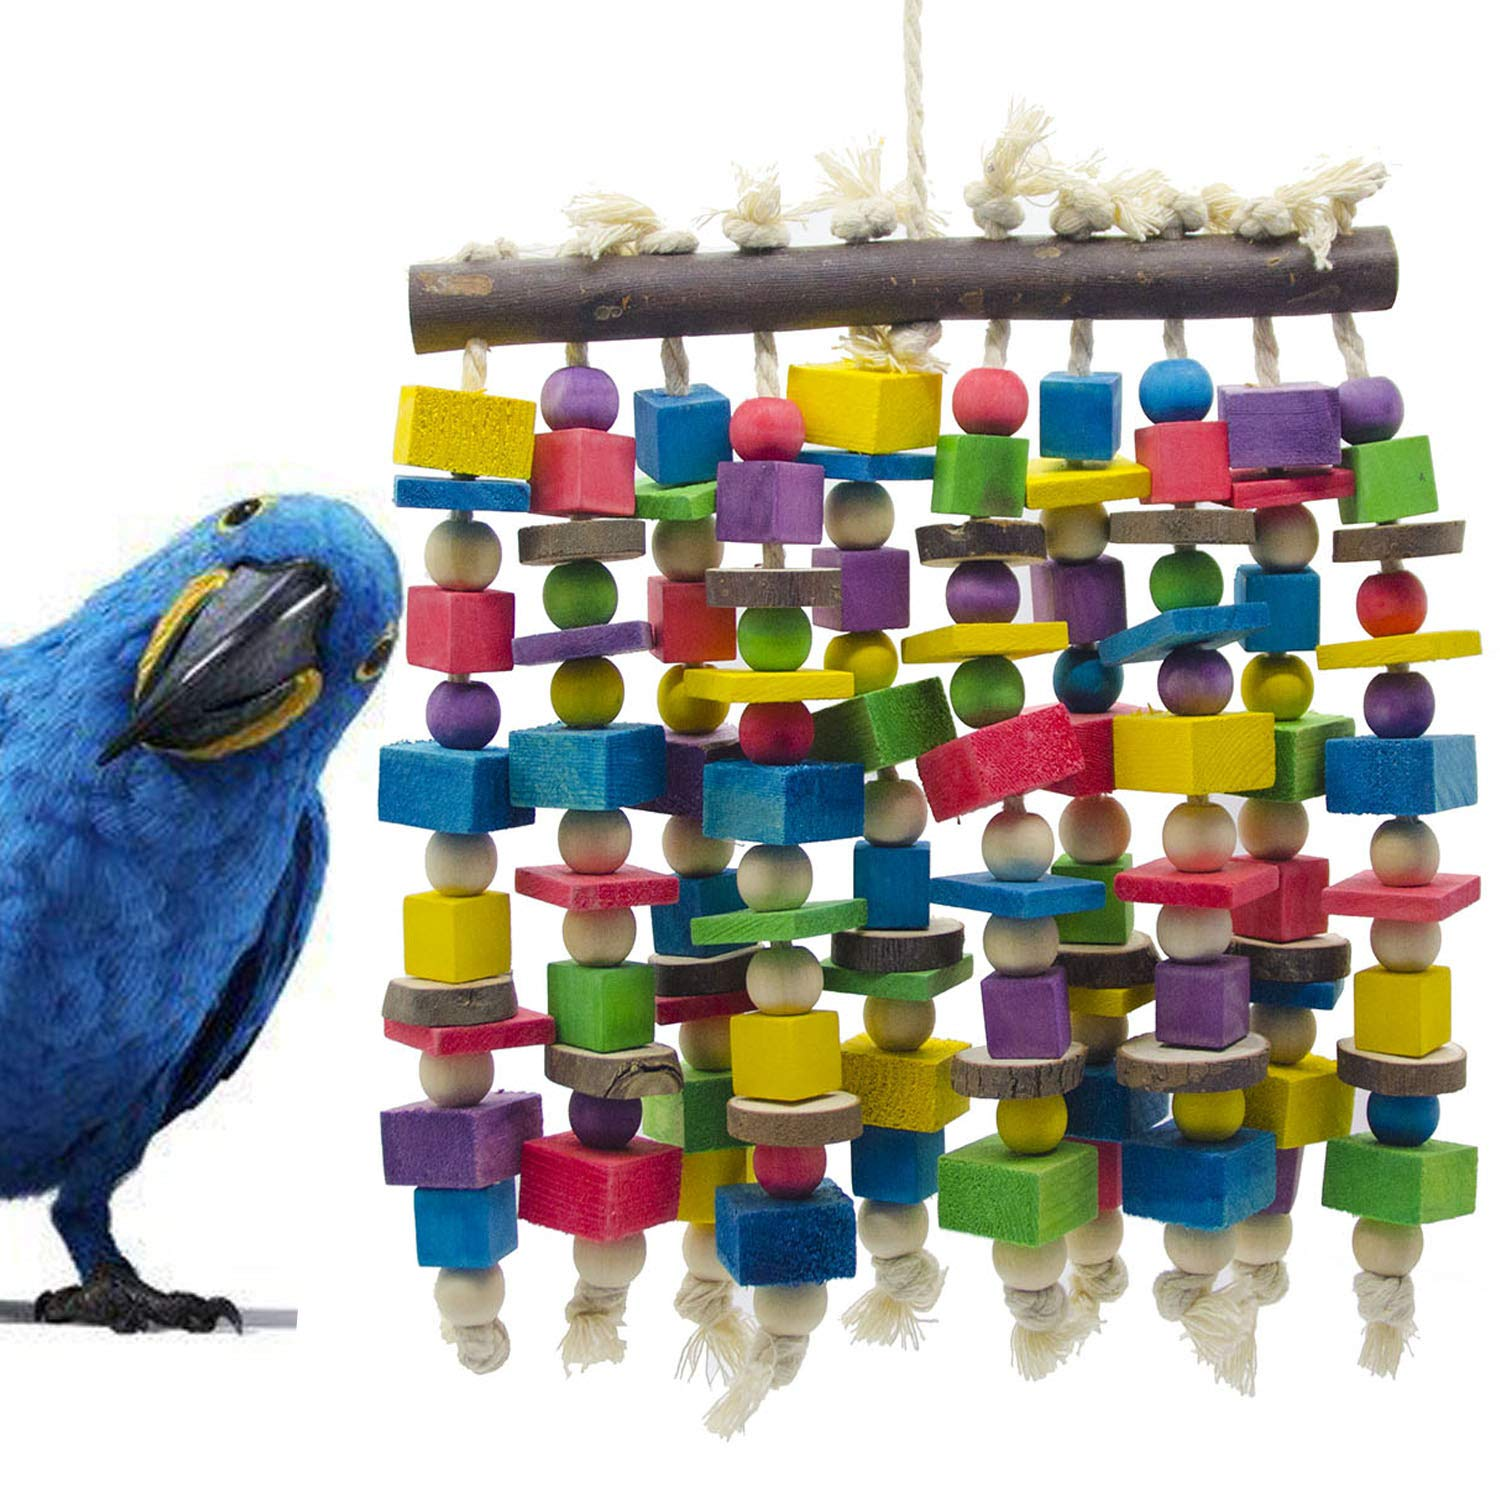 Delokey Large Bird Parrot Chewing Toy - Multicolored Natural Wooden Blocks Bird Parrot Tearing Toys Suggested for Large Macaws cokatoos,African Grey and a Variety of Amazon Parrots(15.7'' X 9.8'') by Deloky